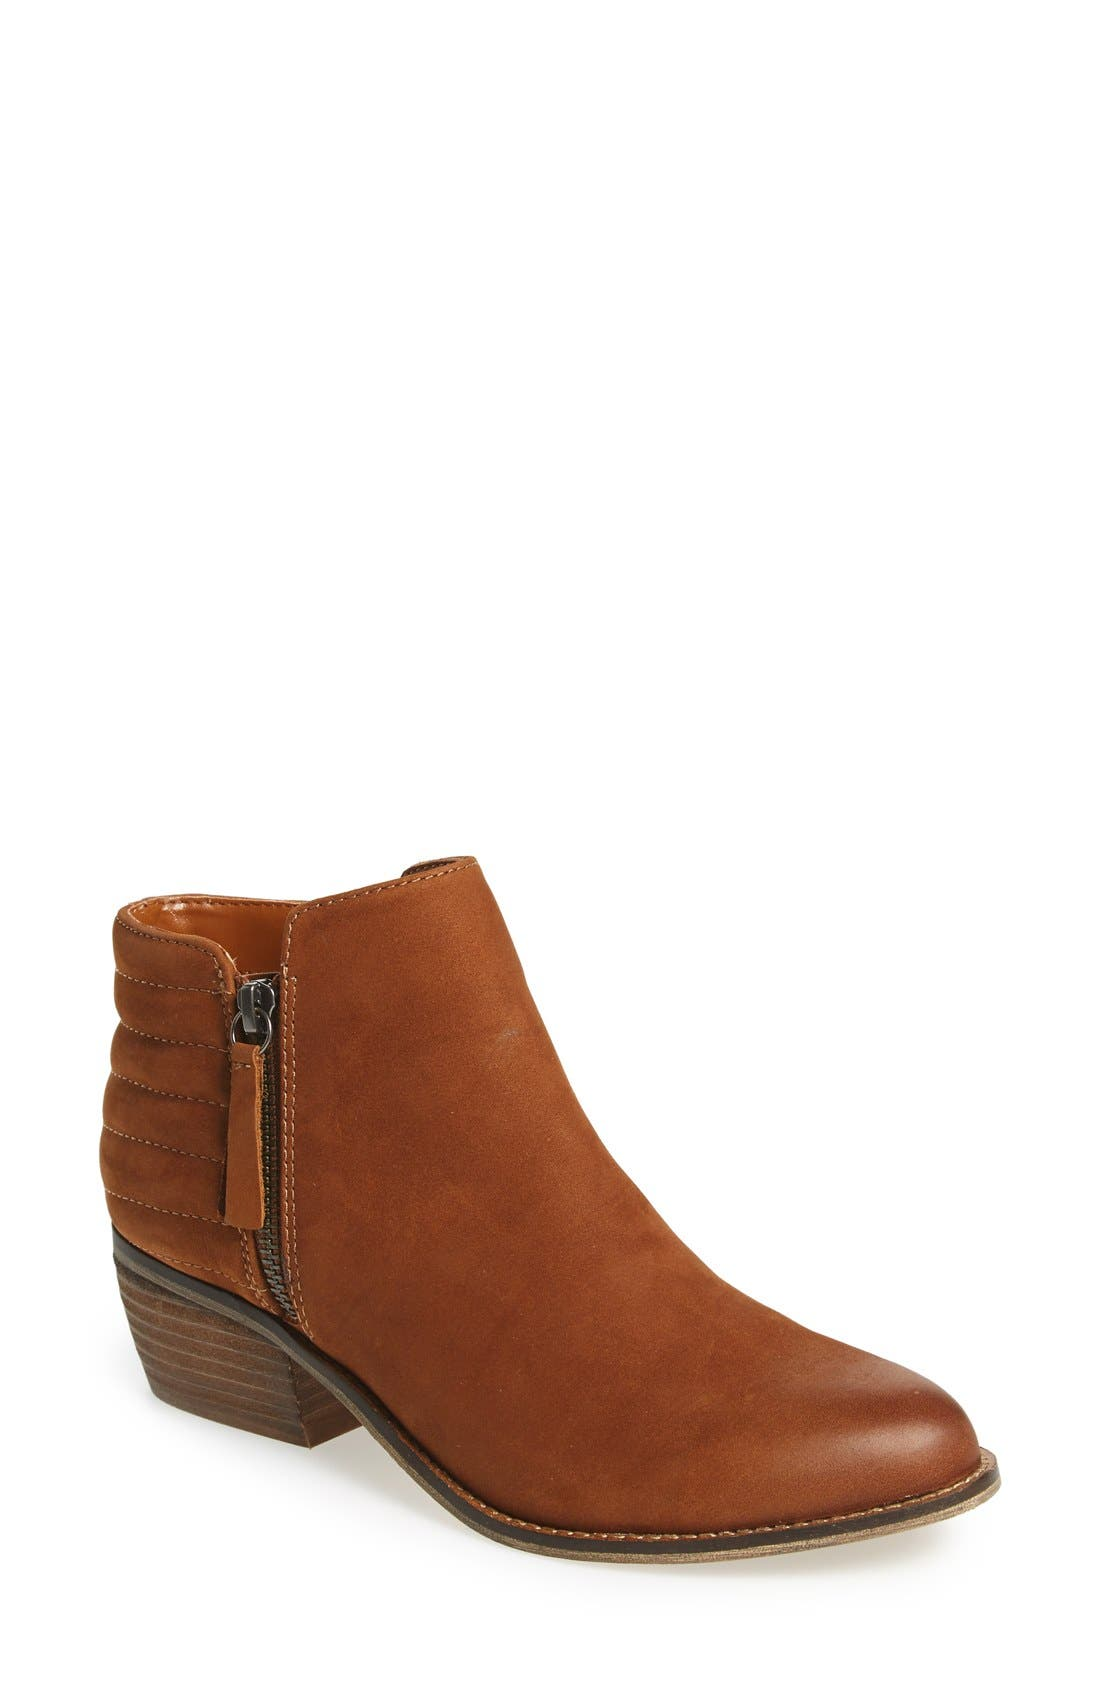 Alternate Image 1 Selected - Dune London 'Petrie' Bootie (Women)